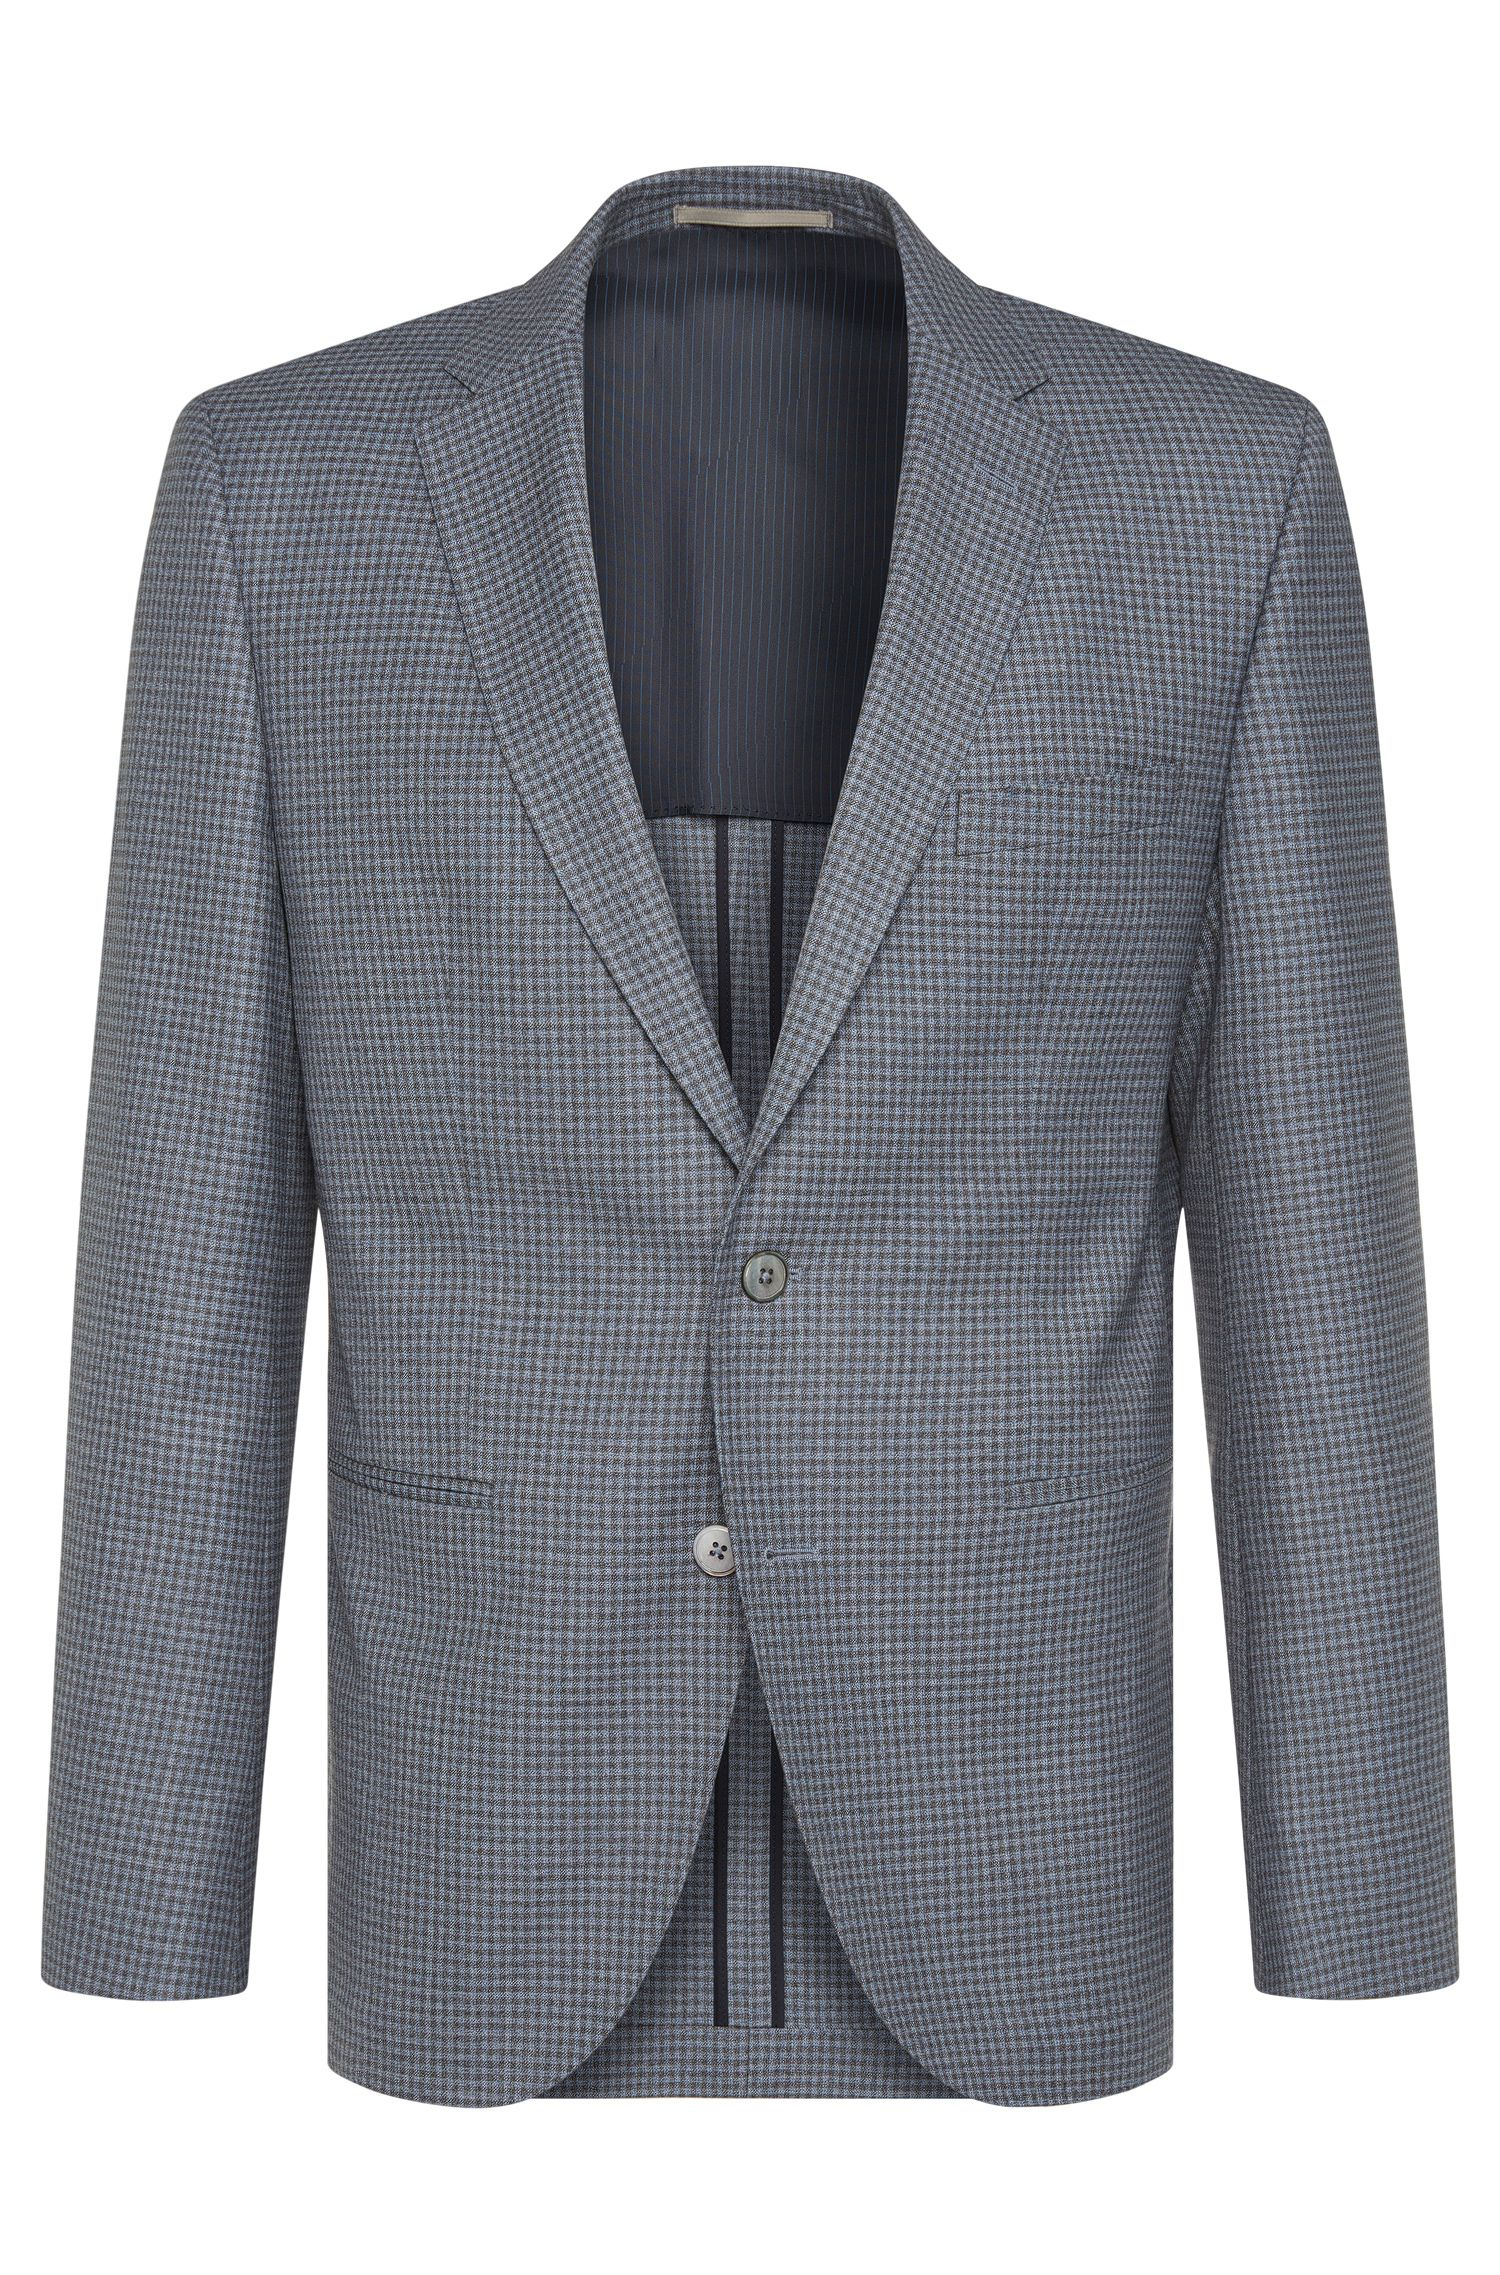 'Jedson' | Regular Fit, Italian Virgin Wool Sport Coat